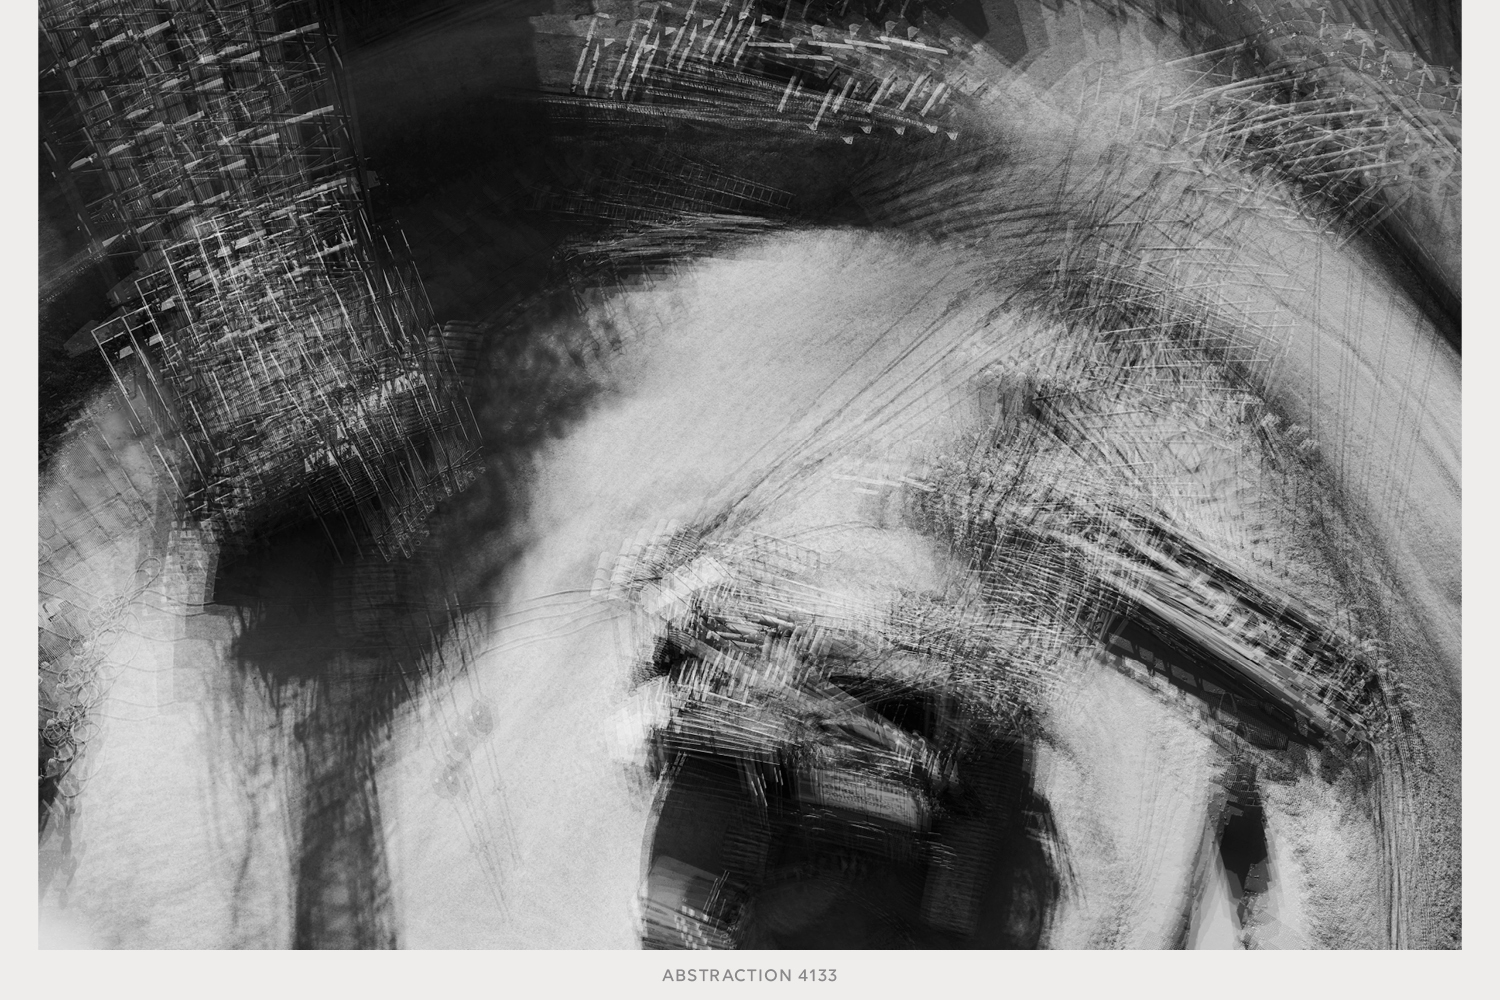 abstraction9.jpg